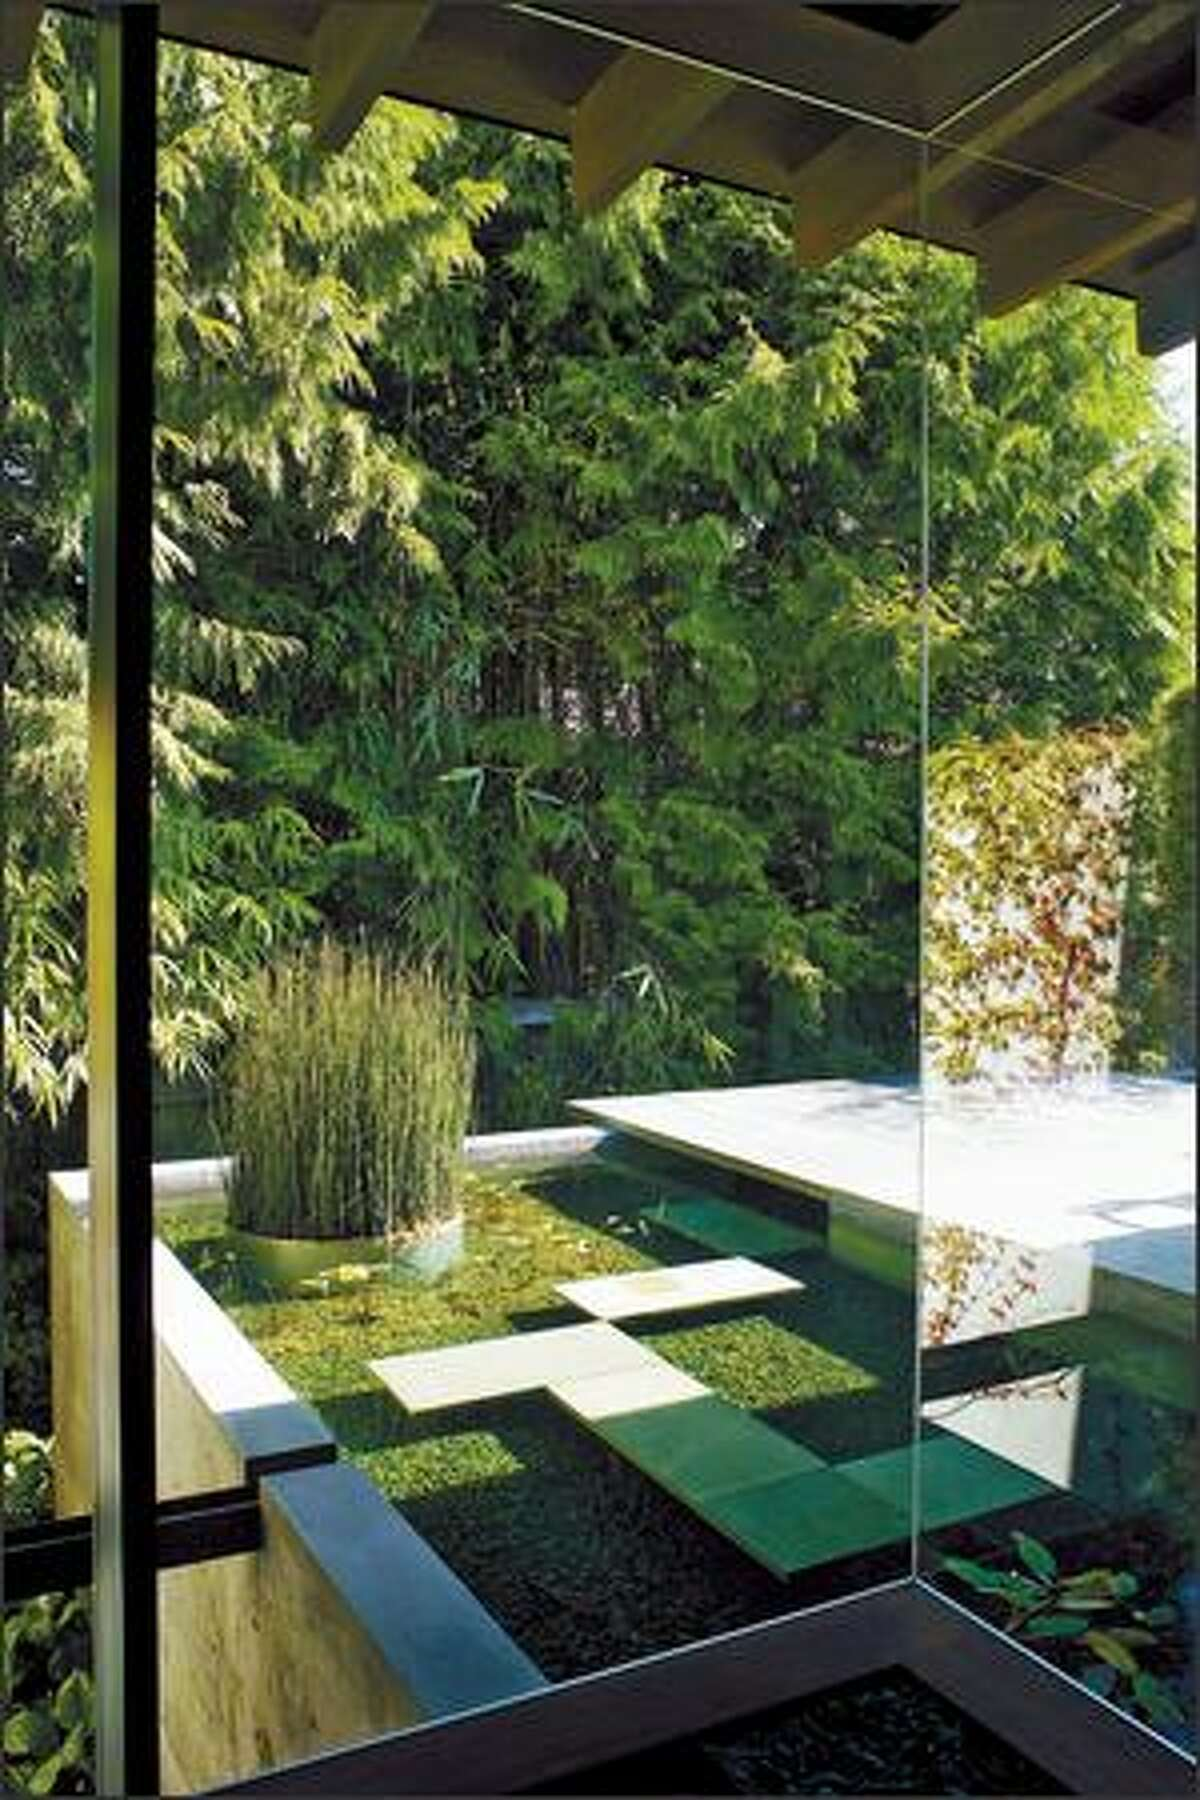 A wall of glass showcases a line of evergreens that act as a figurative wall for the interior of the house.